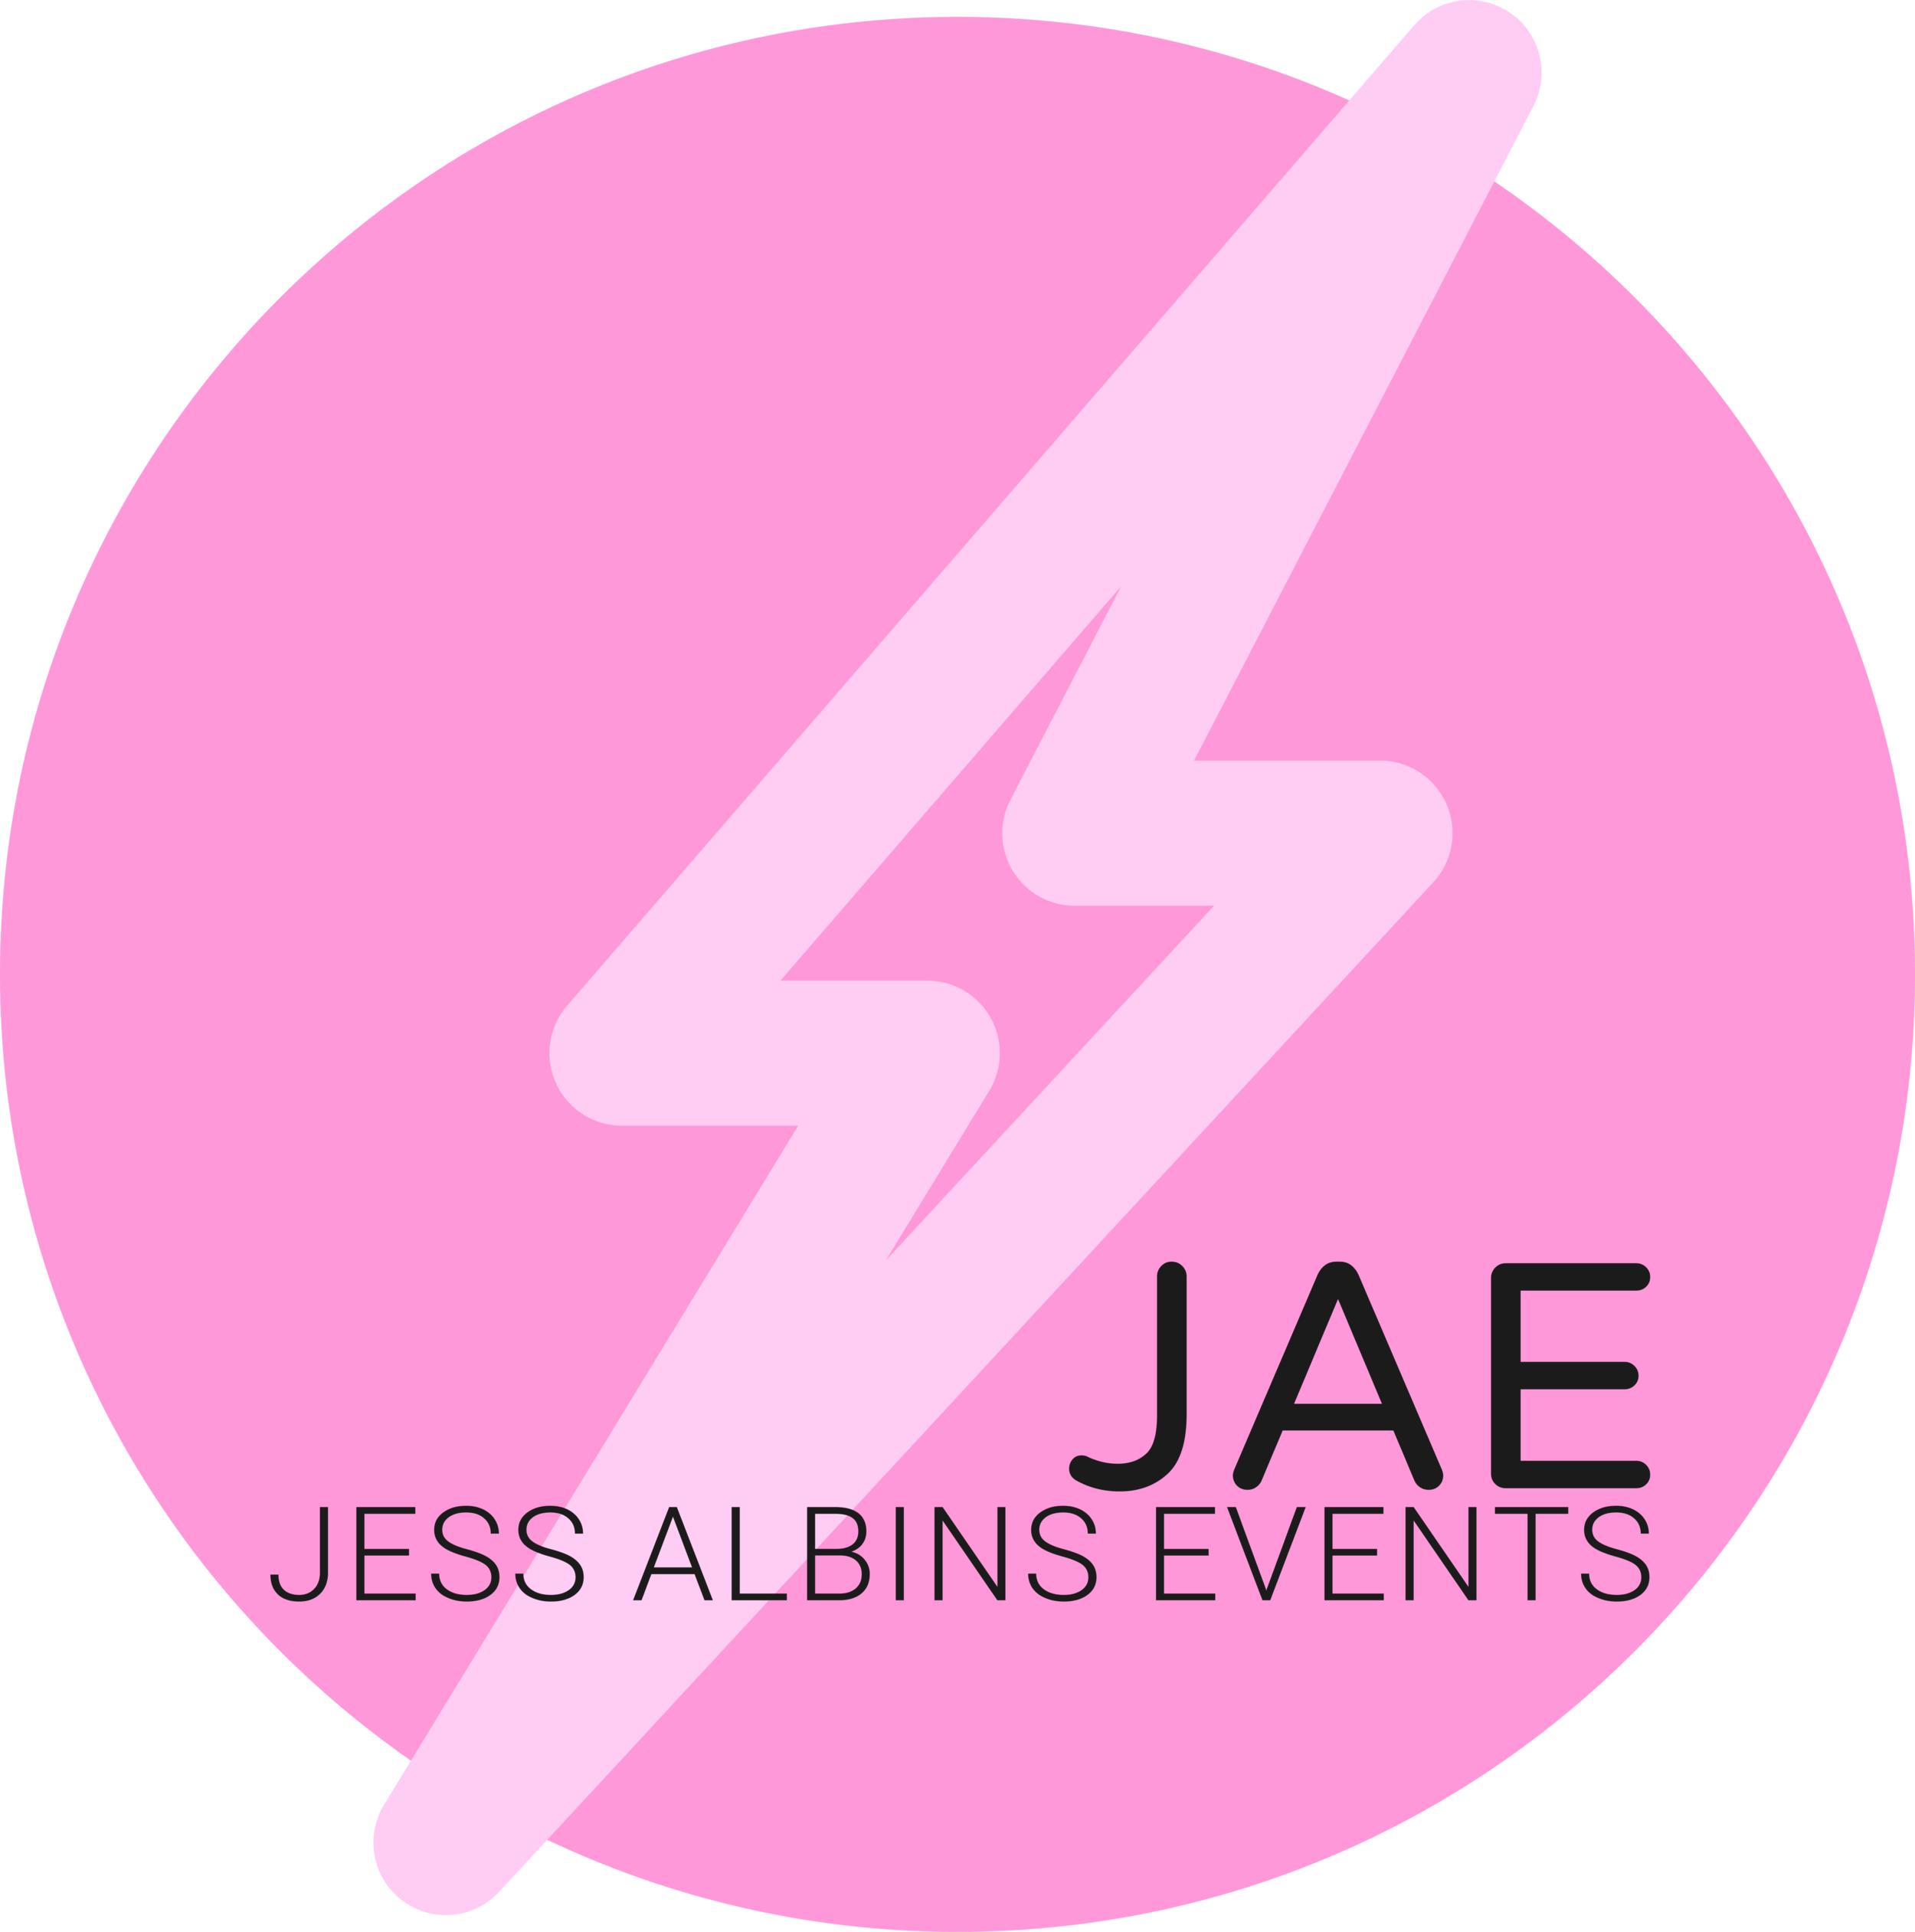 Jess Albins Events